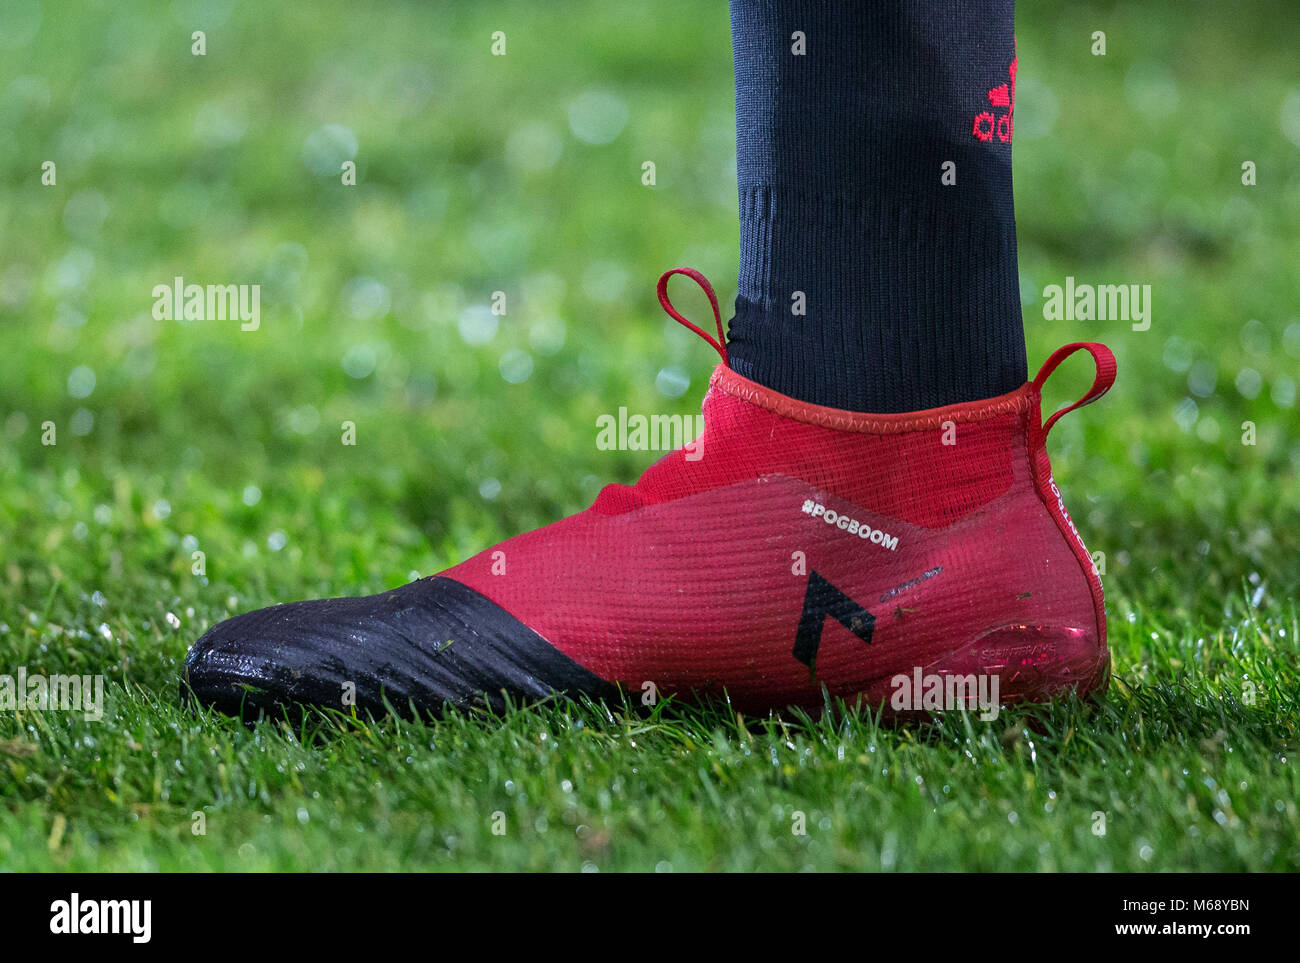 0dae9175058c Paul Pogba of Manchester United personalised adidas football boot  displaying pogboom before the EPL - Premier League match between West  Bromwich Albio